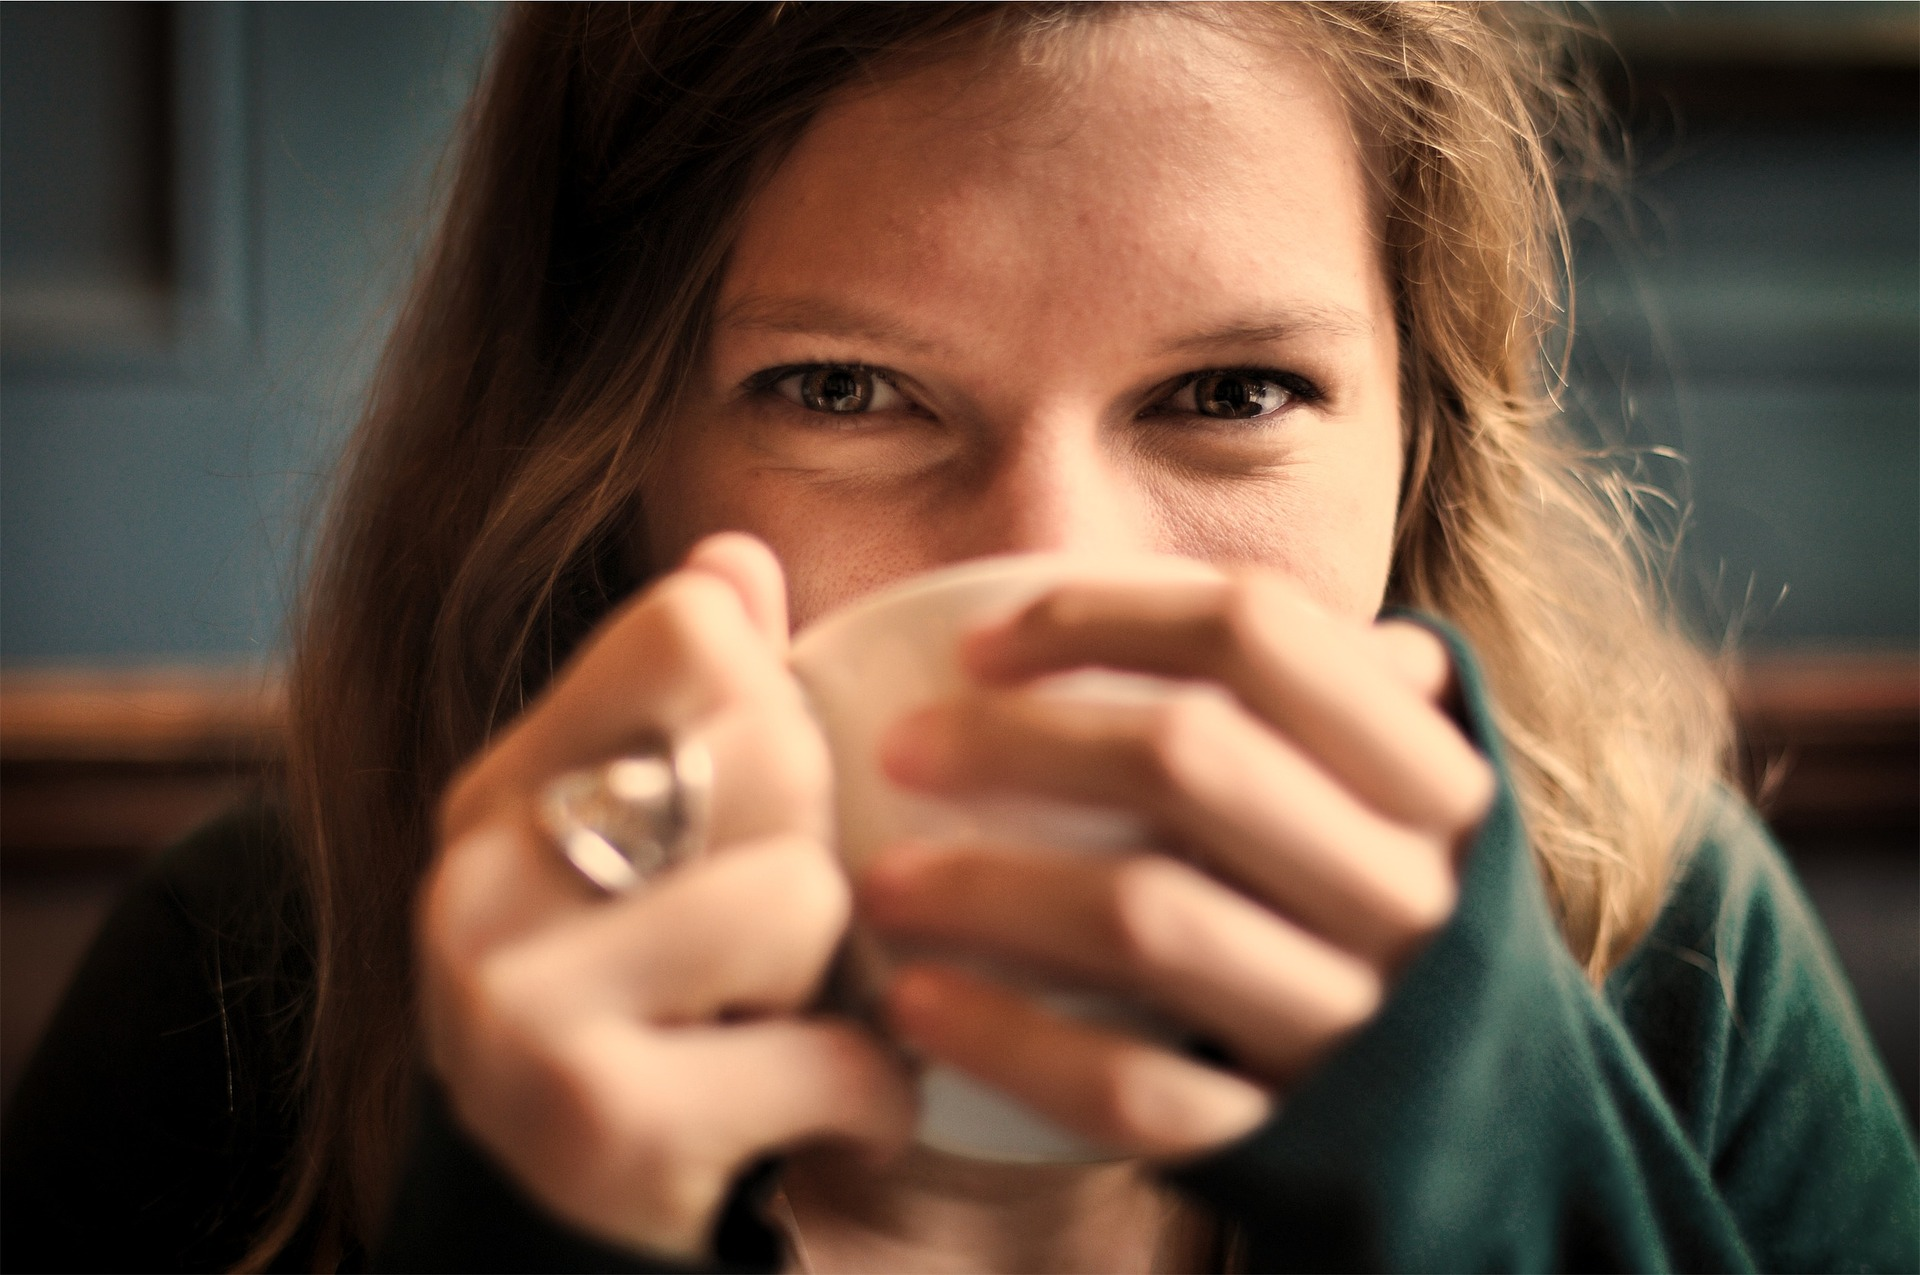 Woman drinking coffee with sparkling eyes